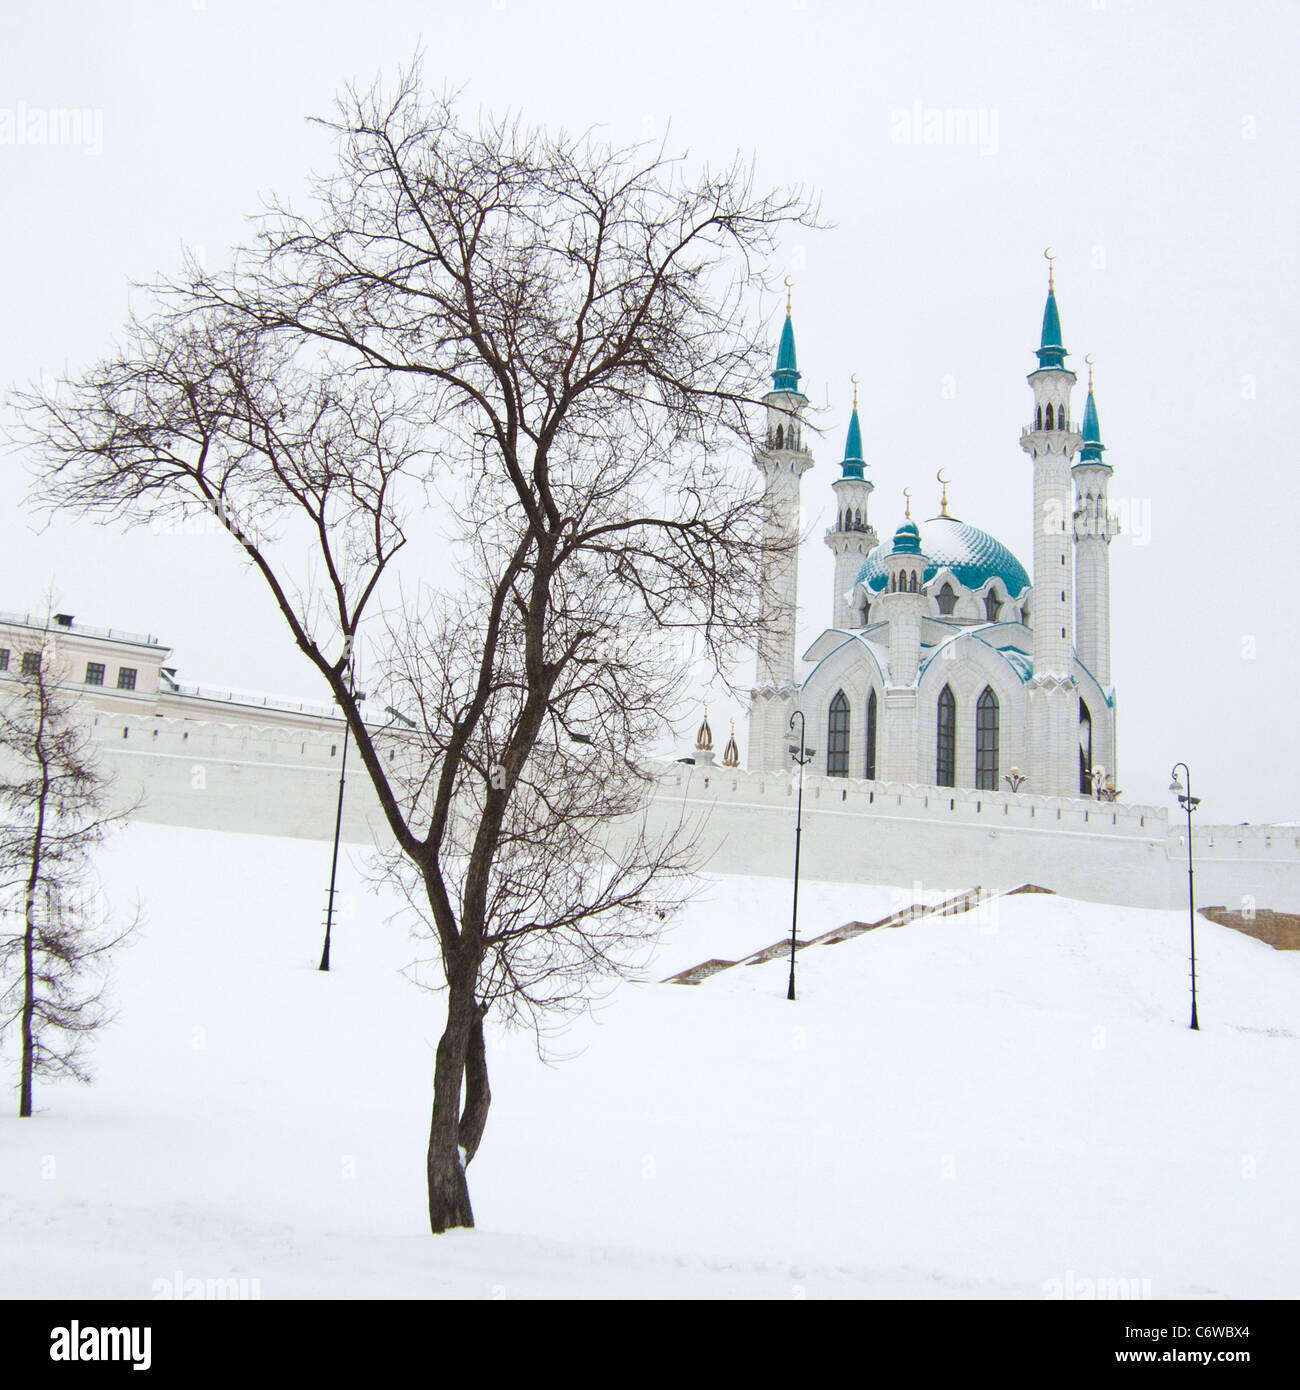 Mosque of Kul-Sharif in winter - Stock Image